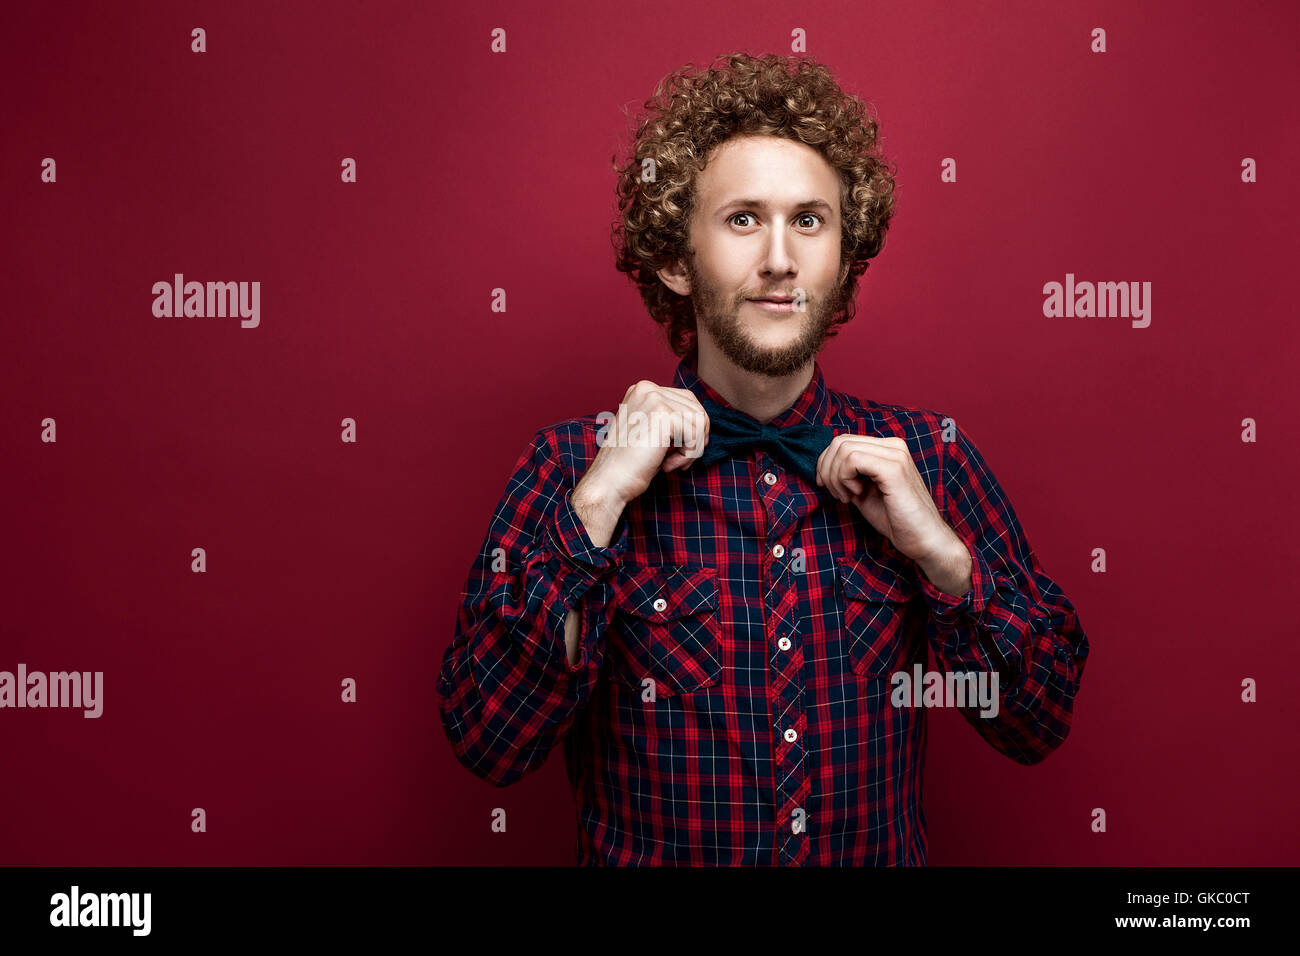 Portrait of surprised curly-haired man in checked shirt and bow-tie on red background. Isolate - Stock Image